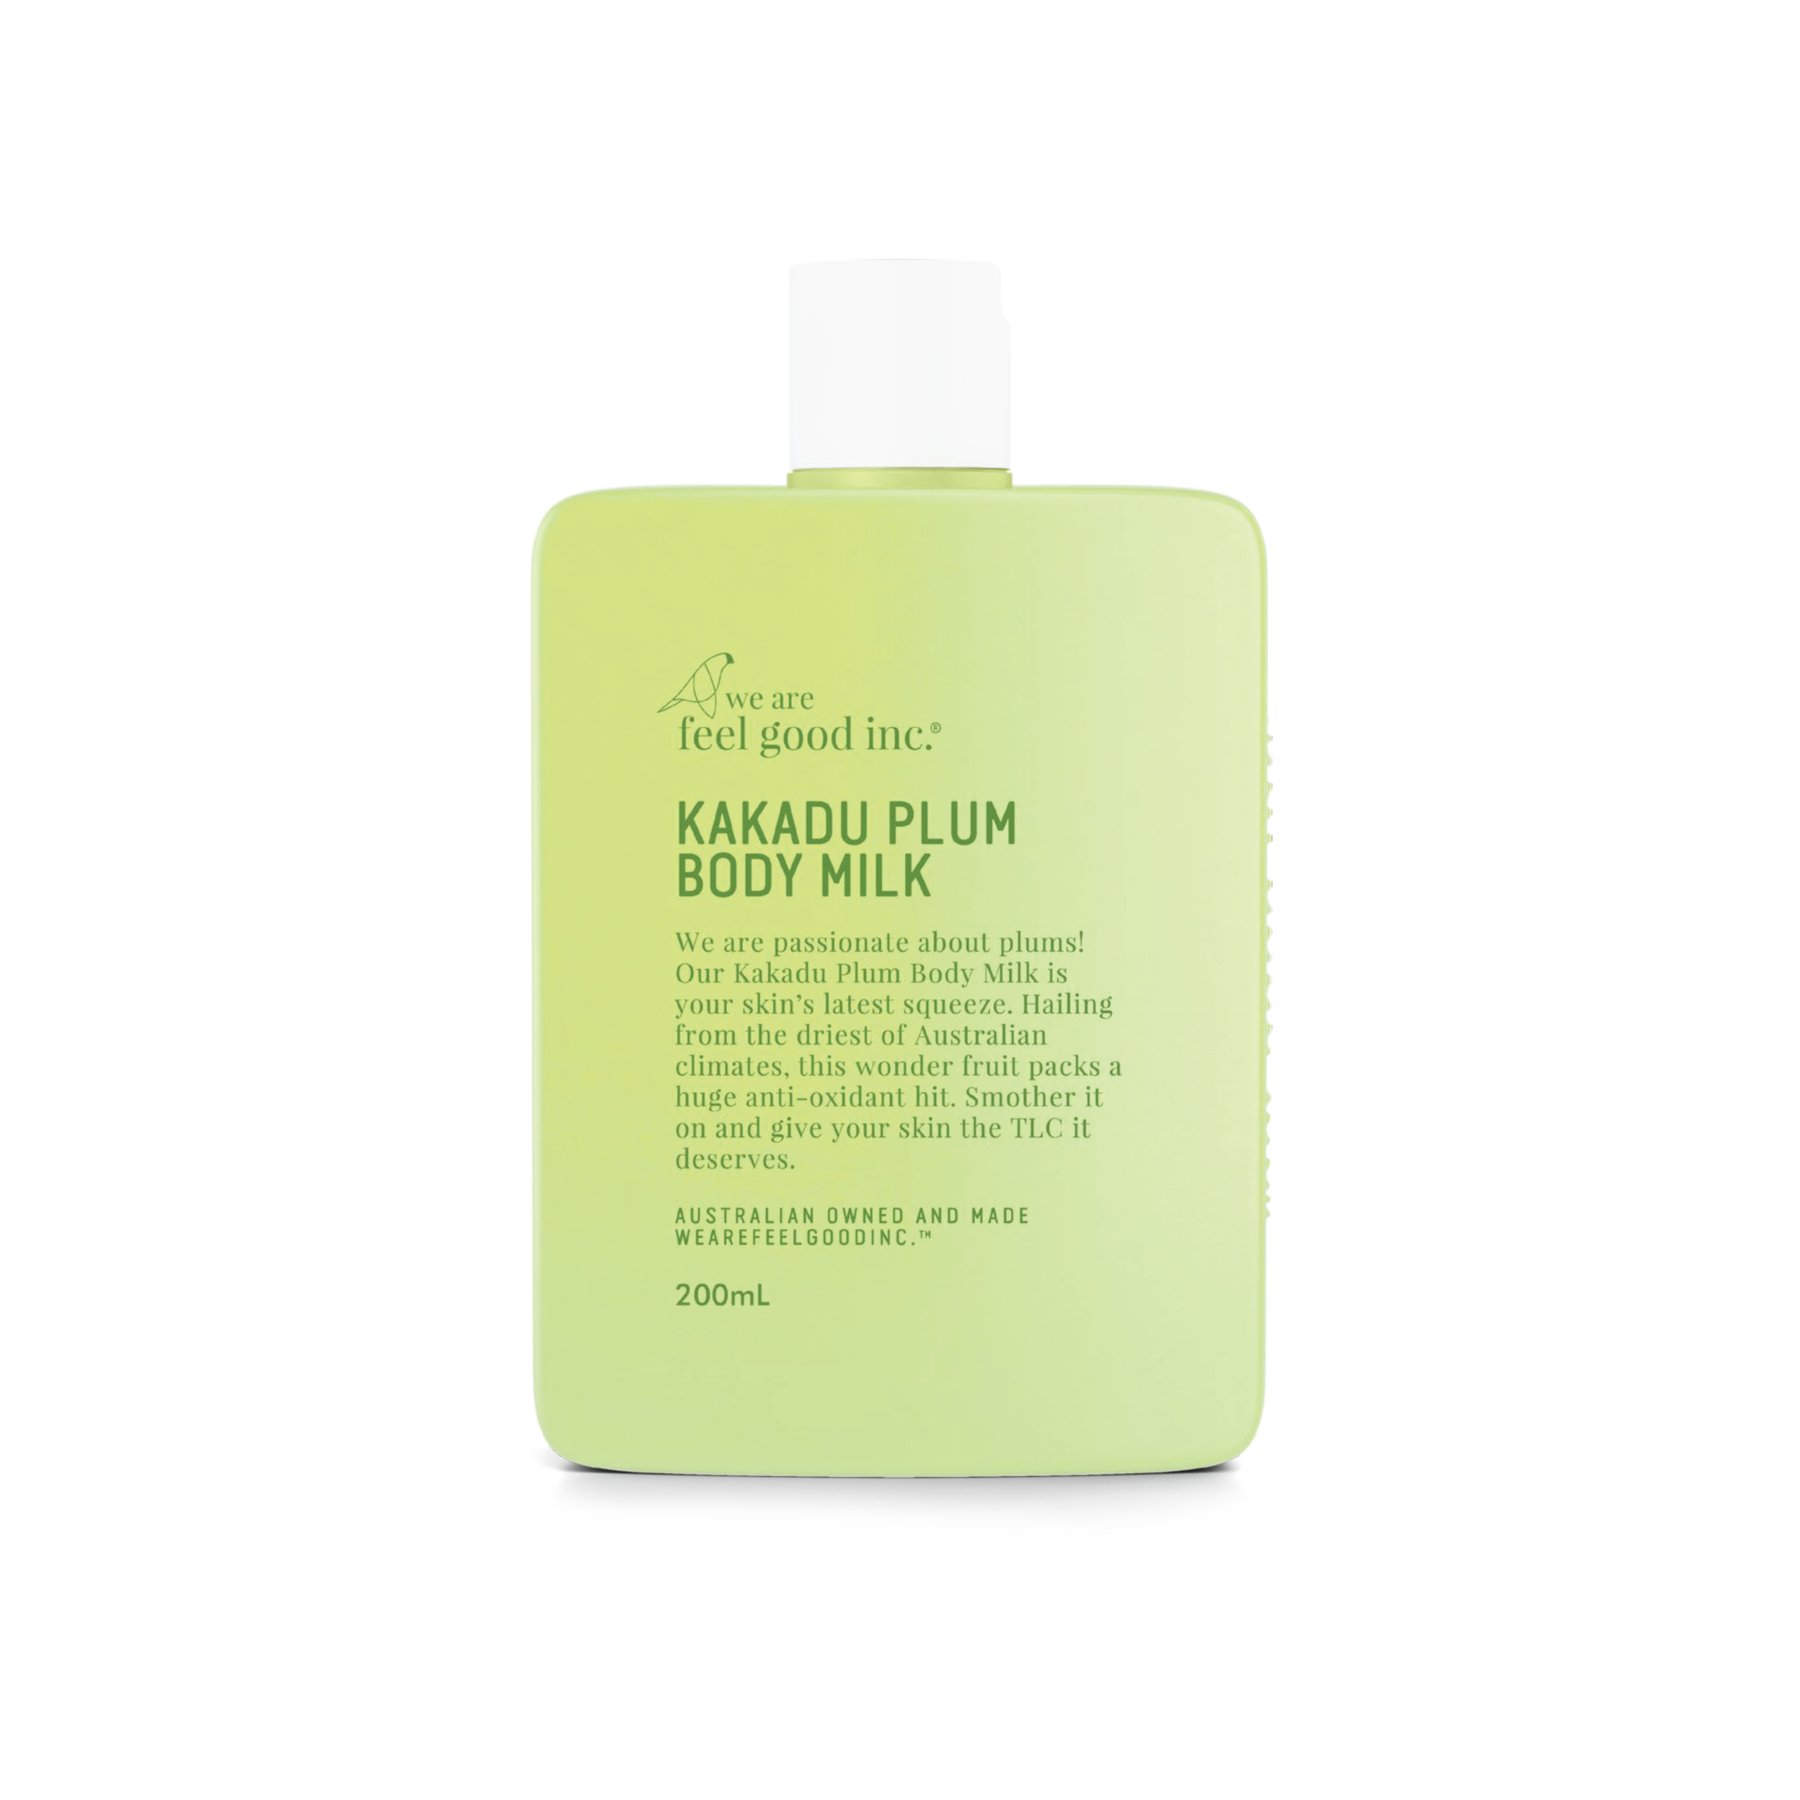 Kakadu Plum Body Milk 200ml